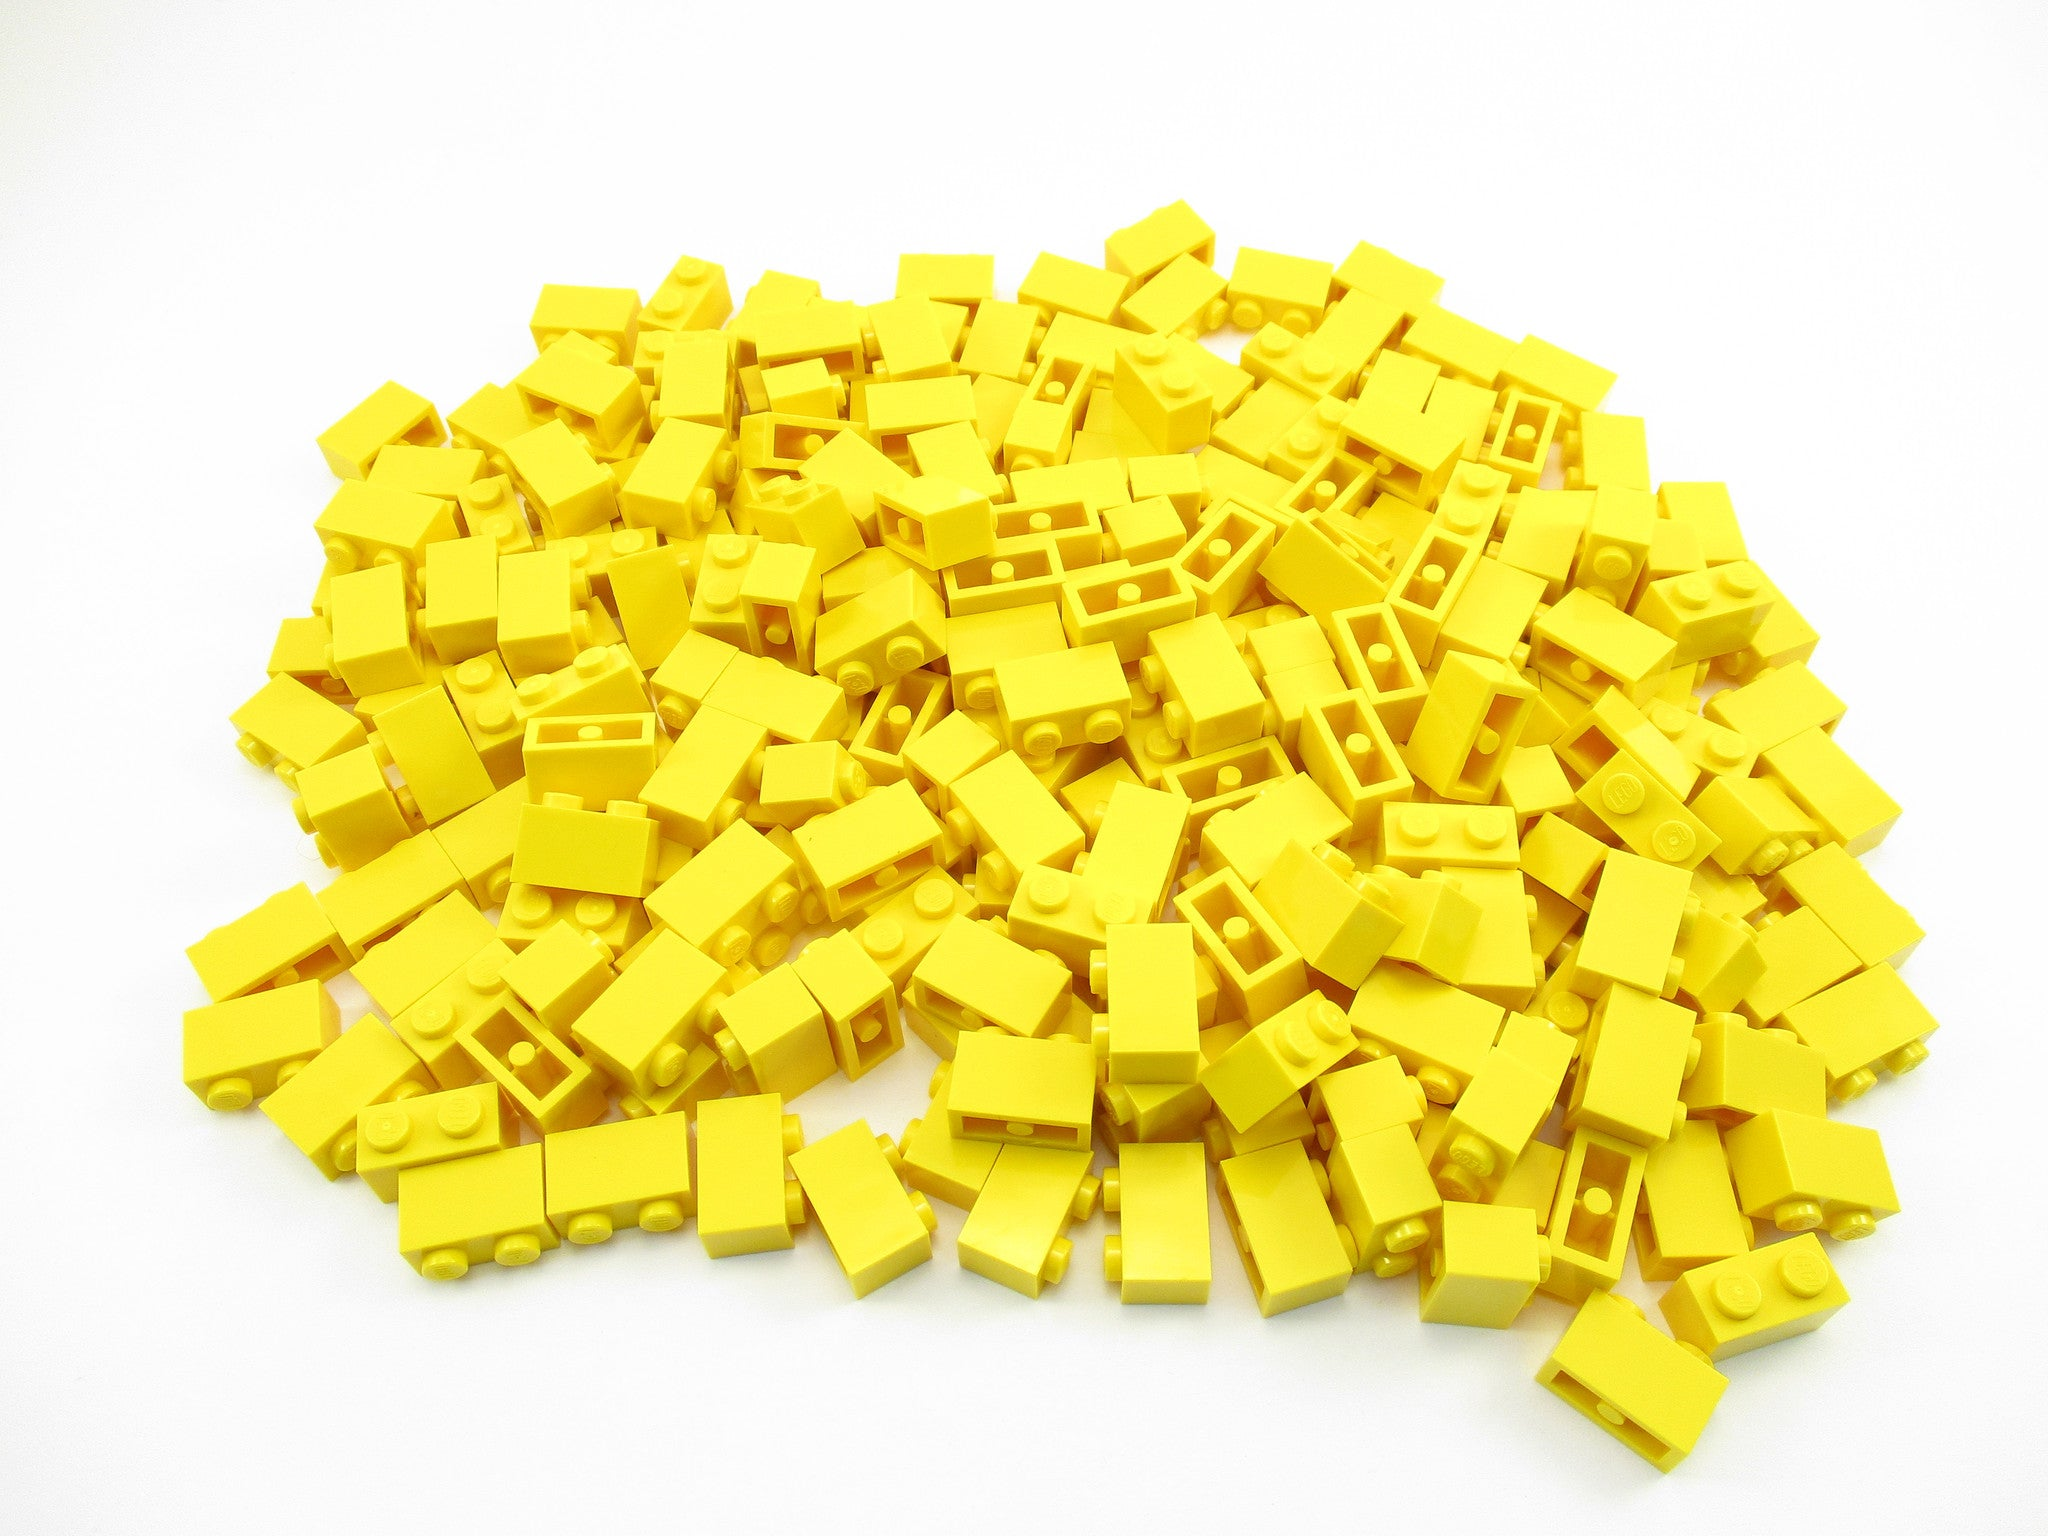 LEGO Yellow Brick 1x2 Lot of 100 Parts Pieces 3004